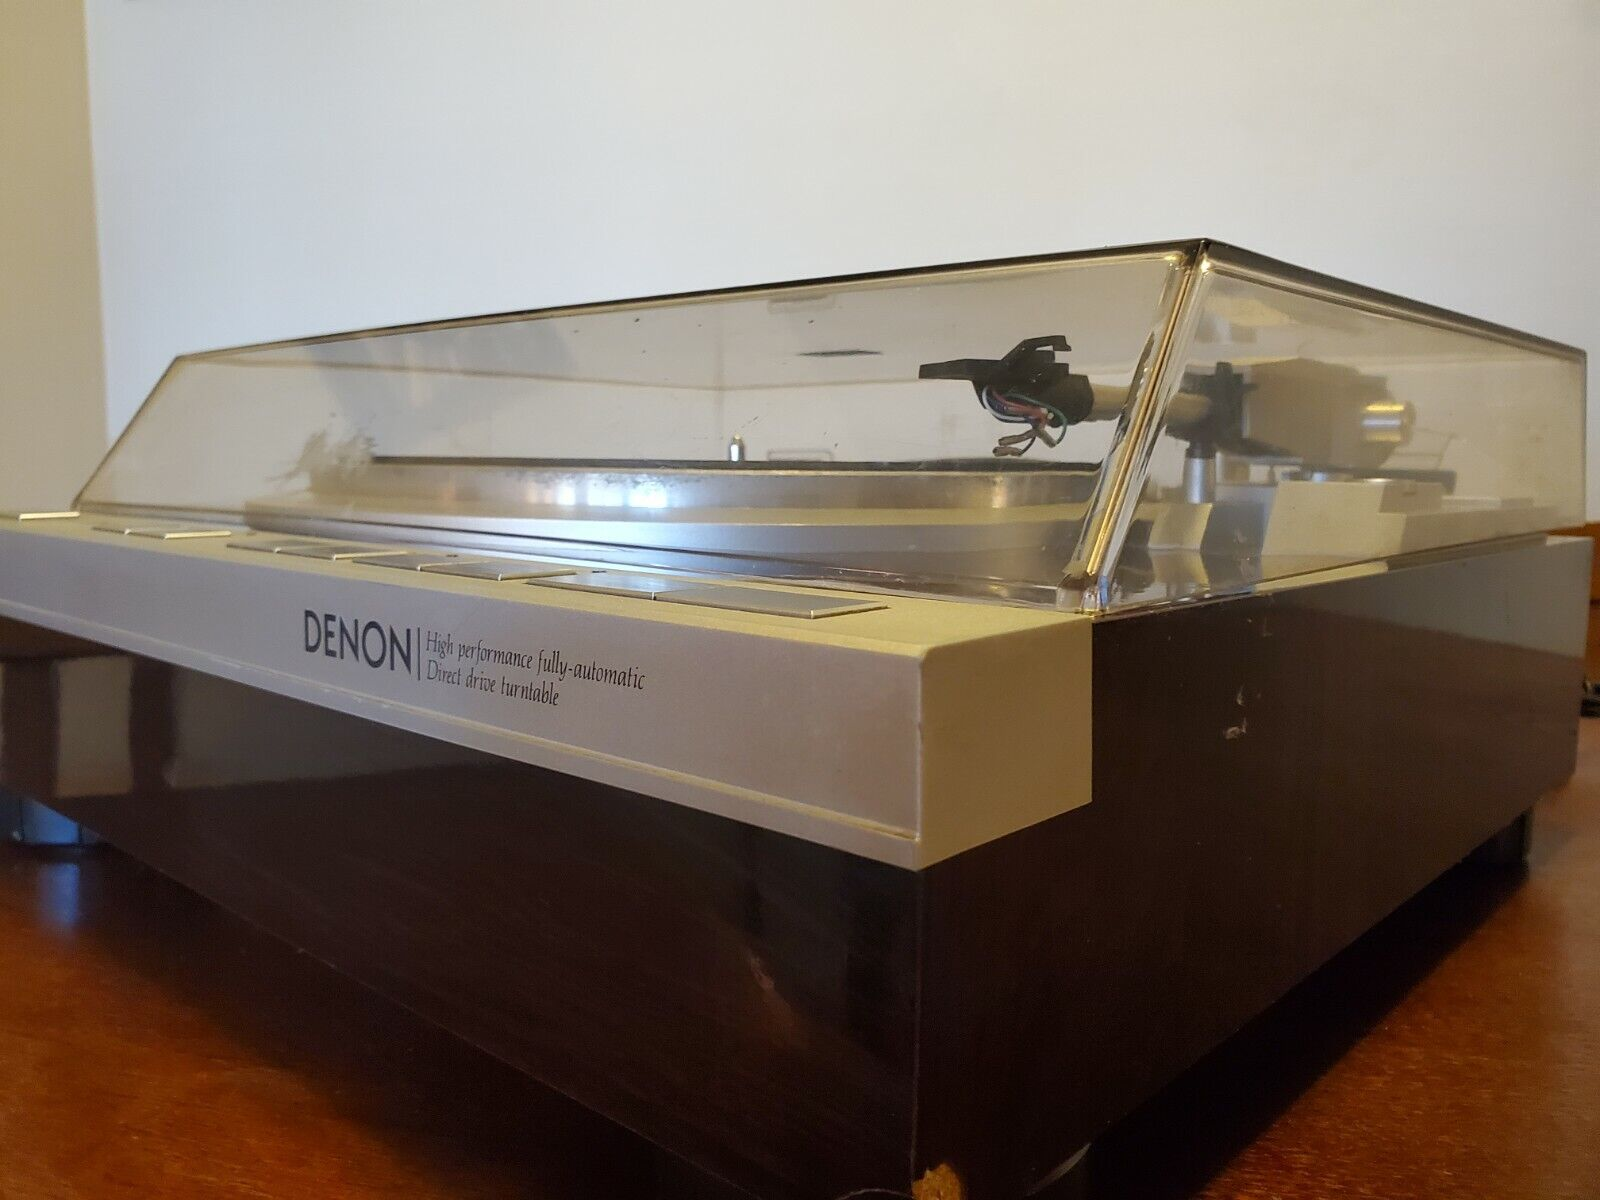 Denon DP-47F Record Player Turntable Direct Drive Fully Automatic AC100V Vintage. Buy it now for 350.00